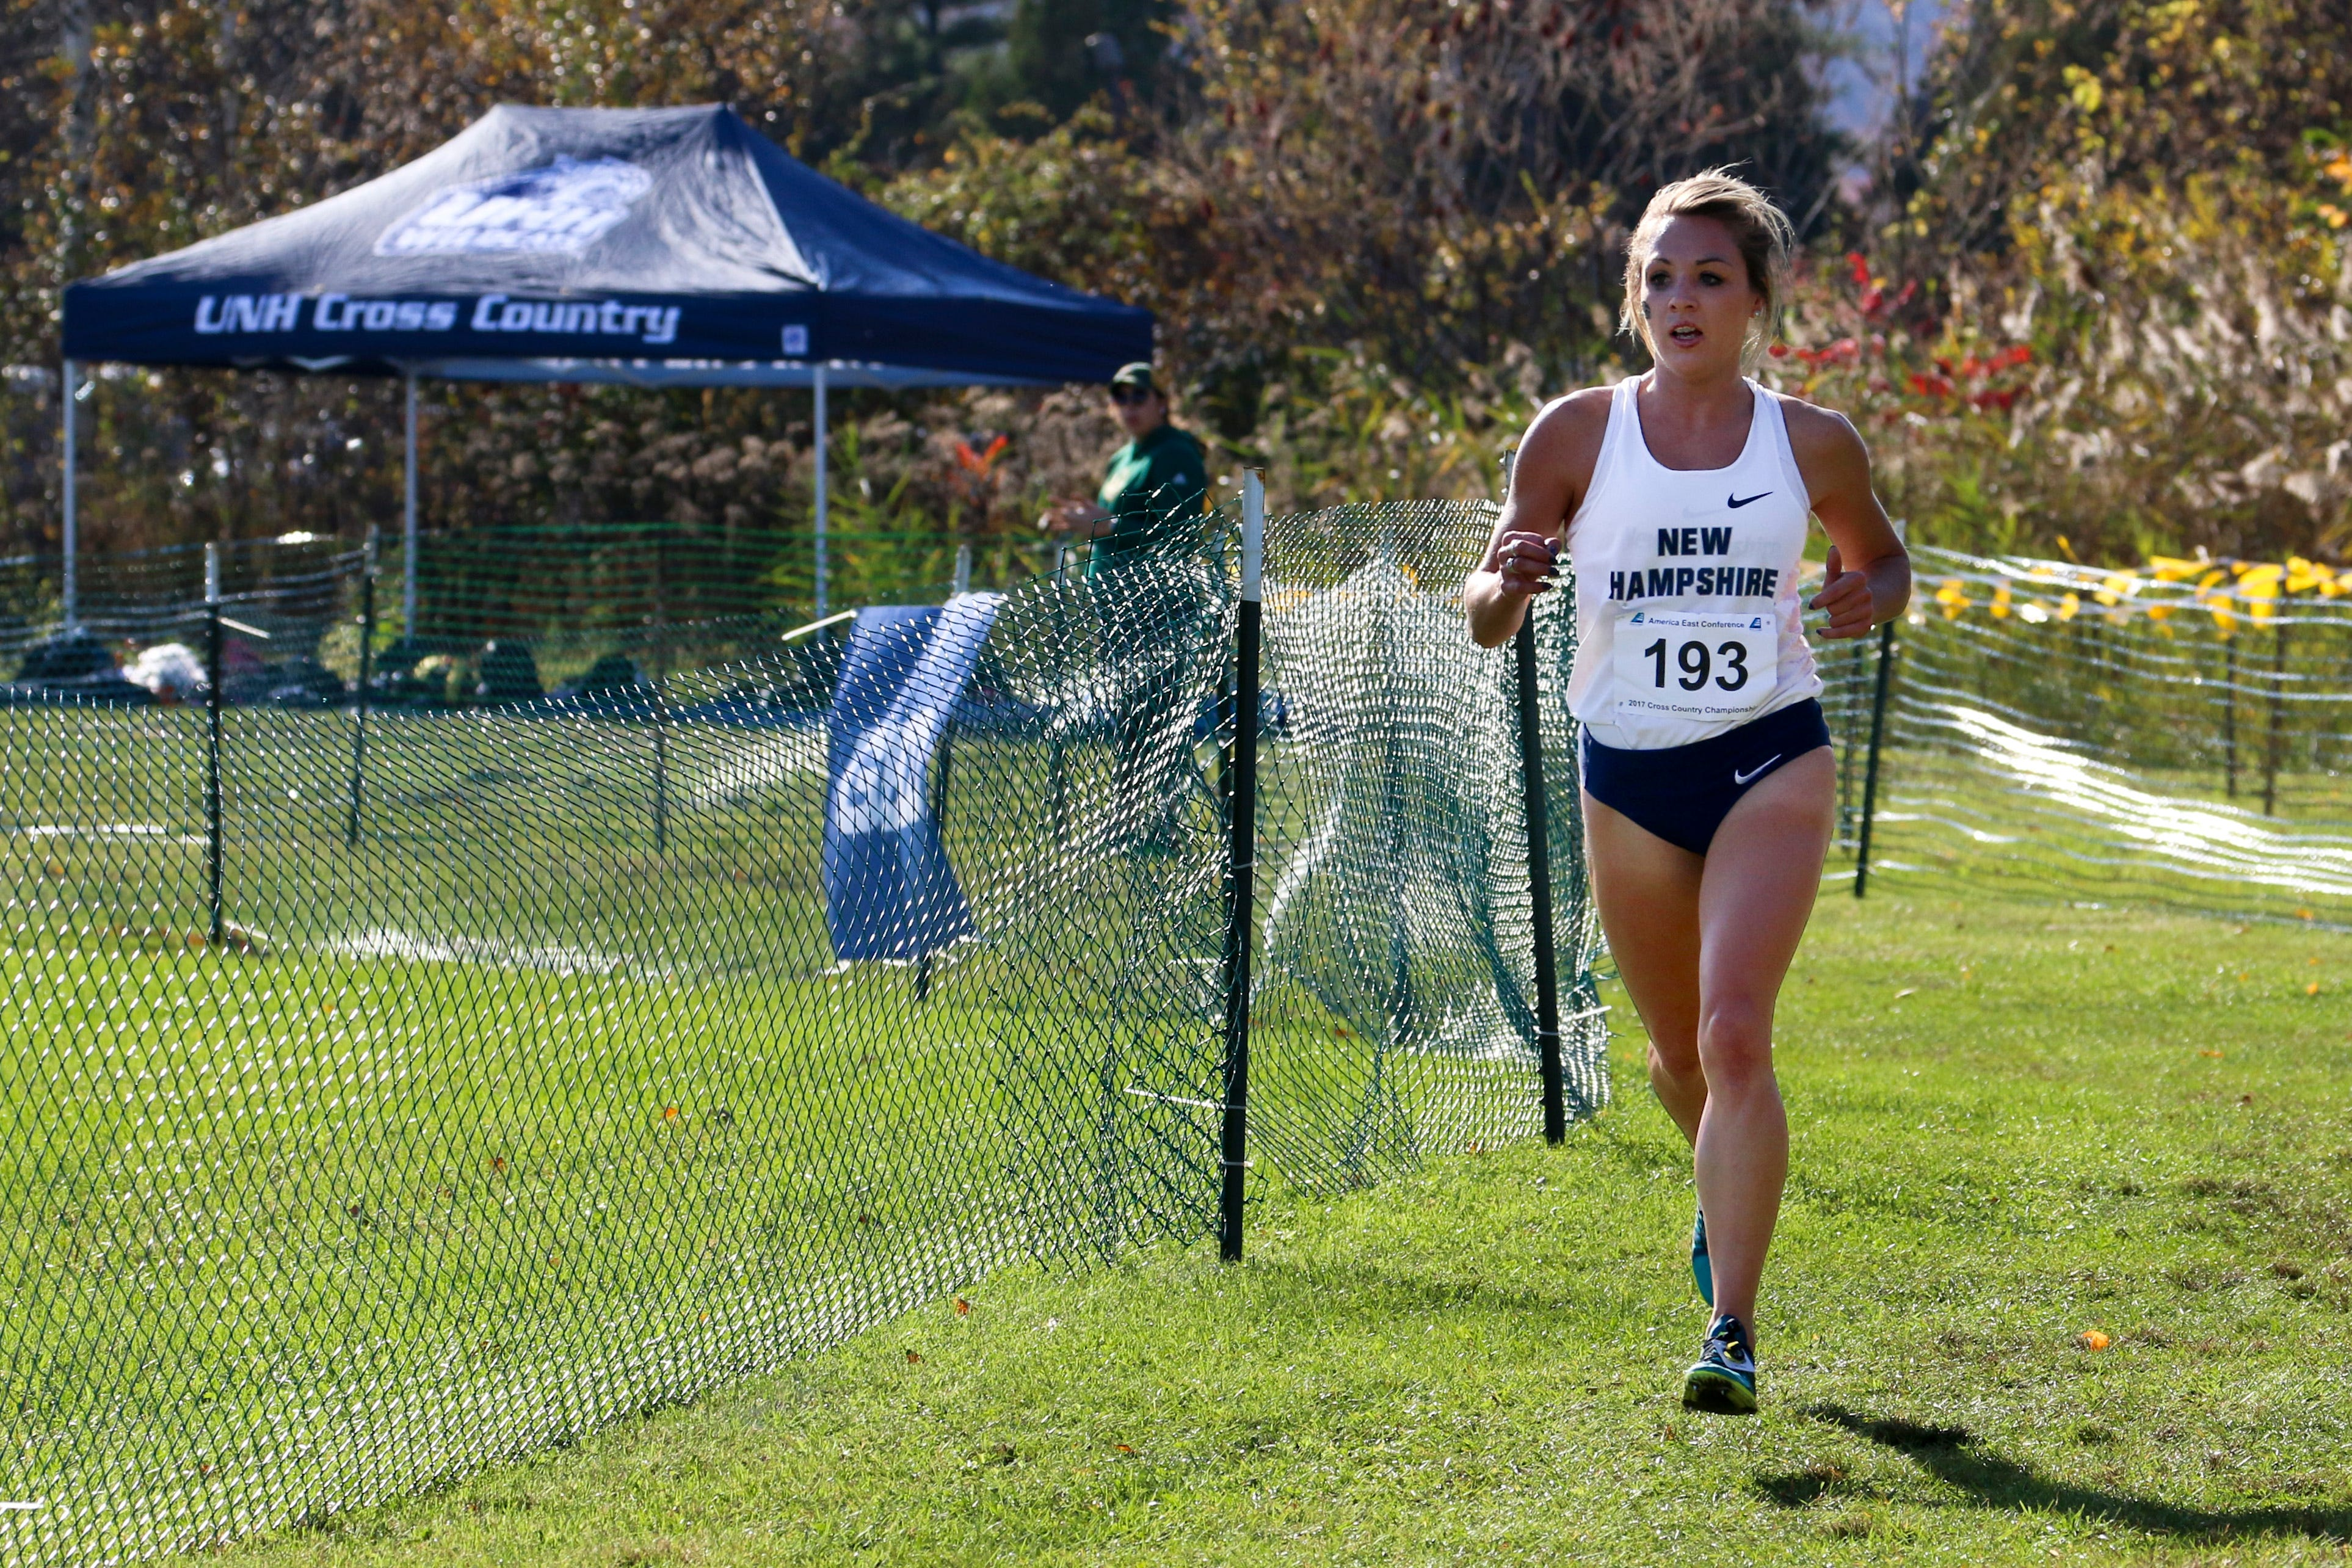 Elle Purrier St. Pierre is the most decorated athlete in the history of University of New Hampshire athletics.